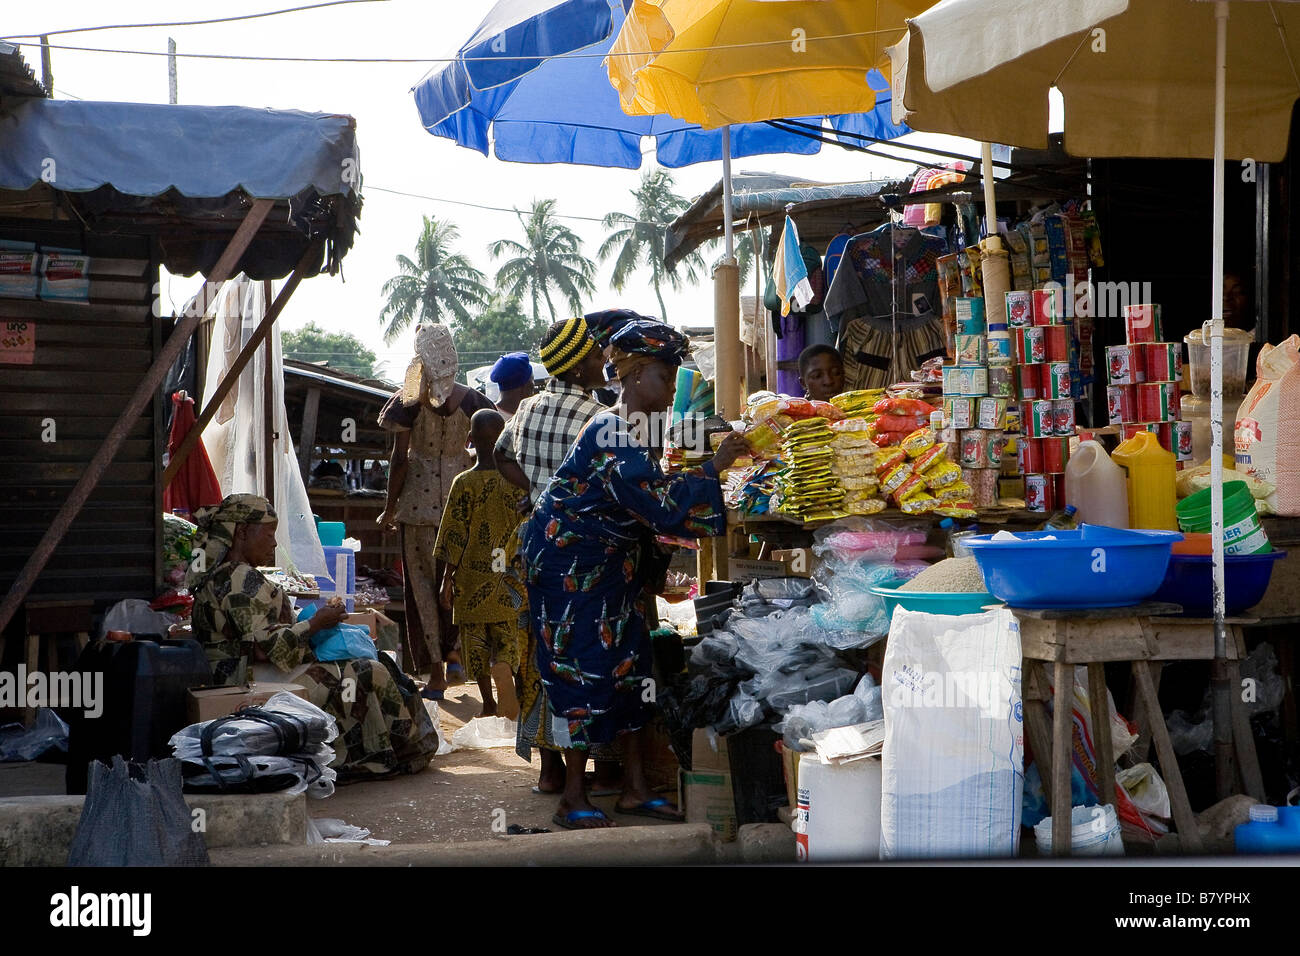 People shopping in a local market in Poka Epe Nigeria - Stock Image